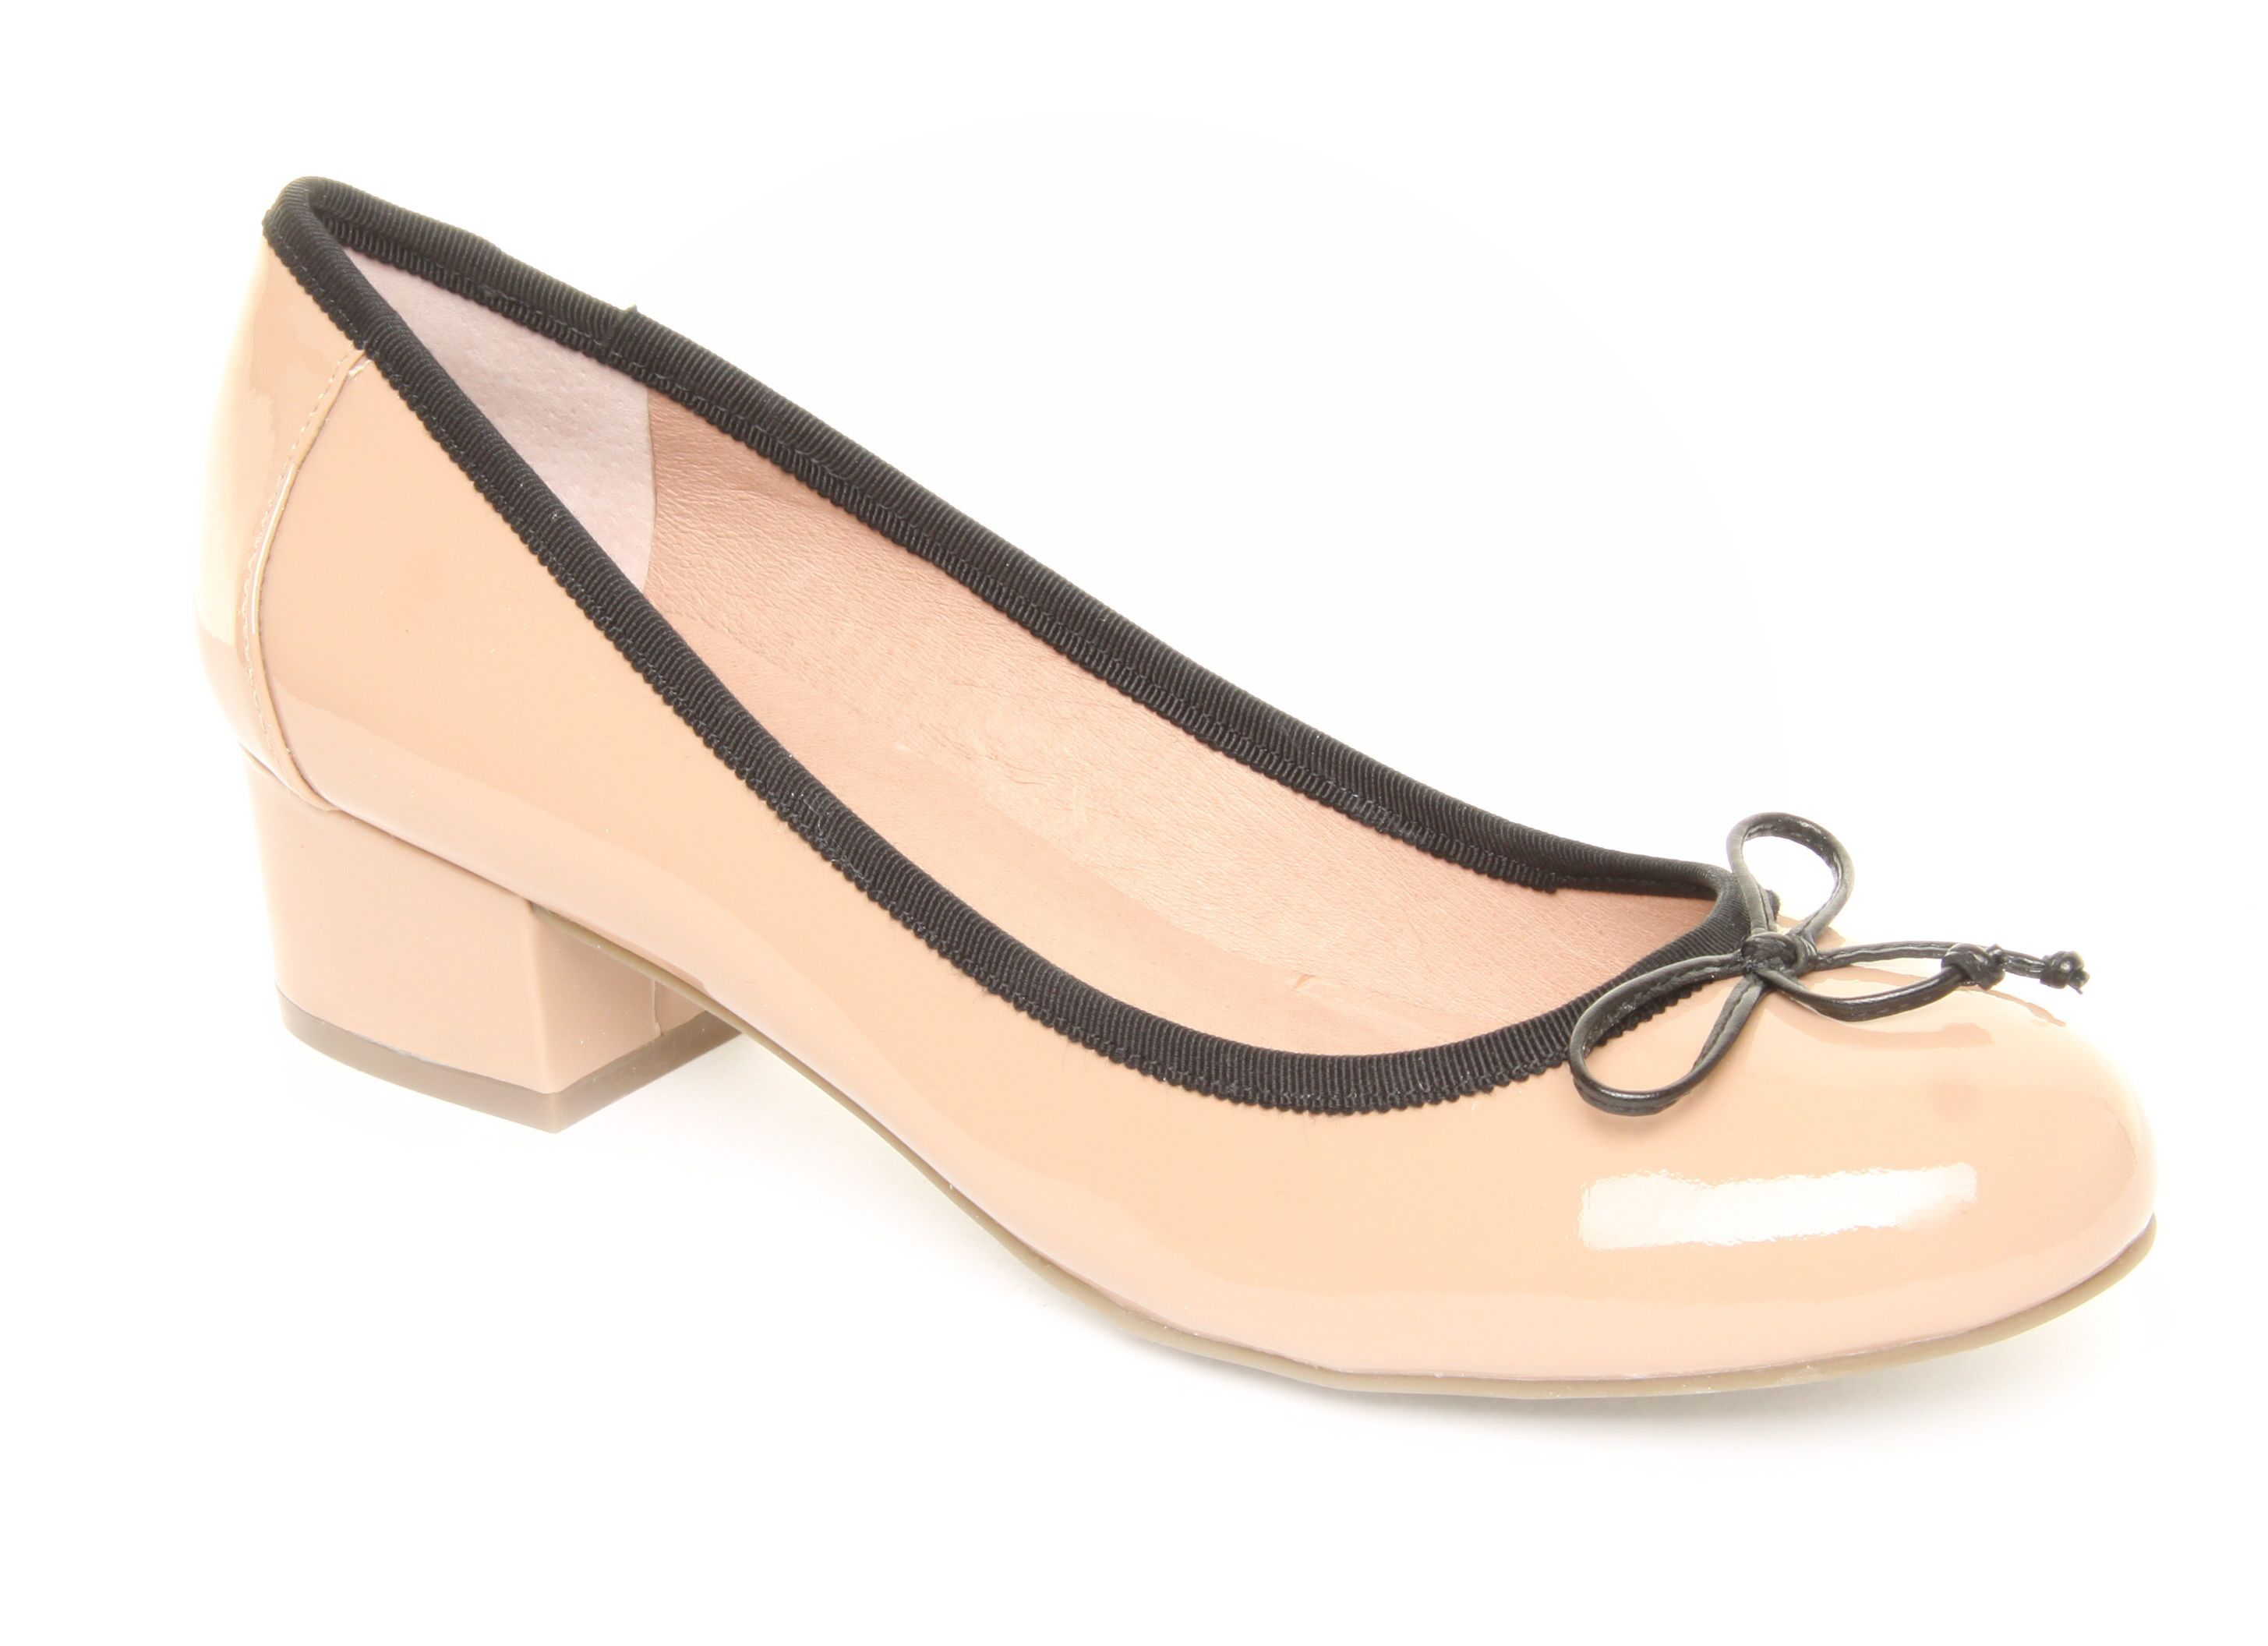 Bramley low heeled court shoes